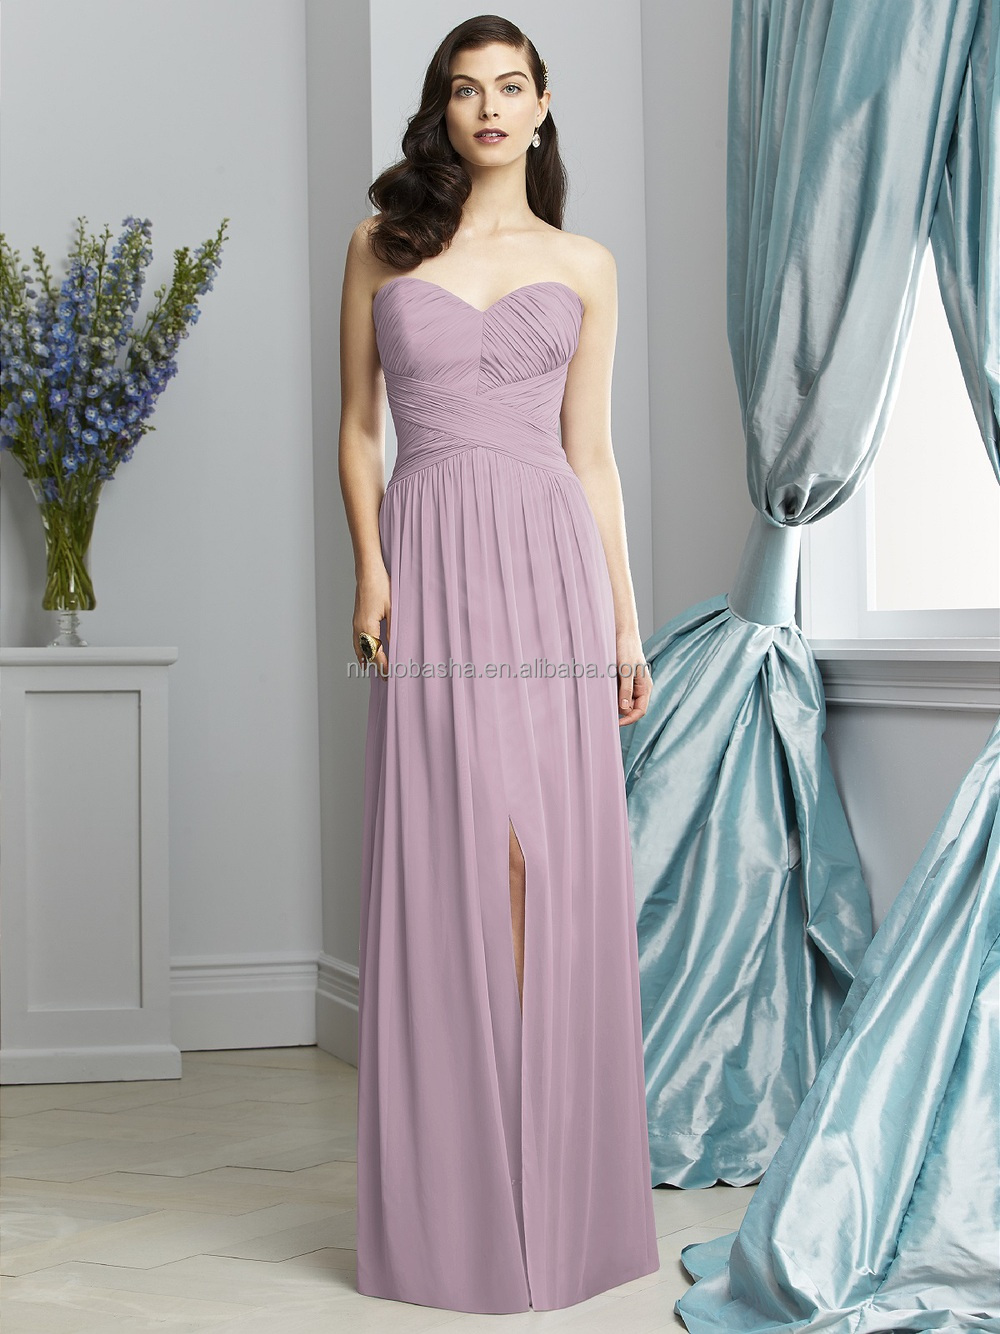 2015 light purple long bridesmaid dress sweetheart full length 2015 light purple long bridesmaid dress sweetheart full length criss cross ruched bodice front ombrellifo Images